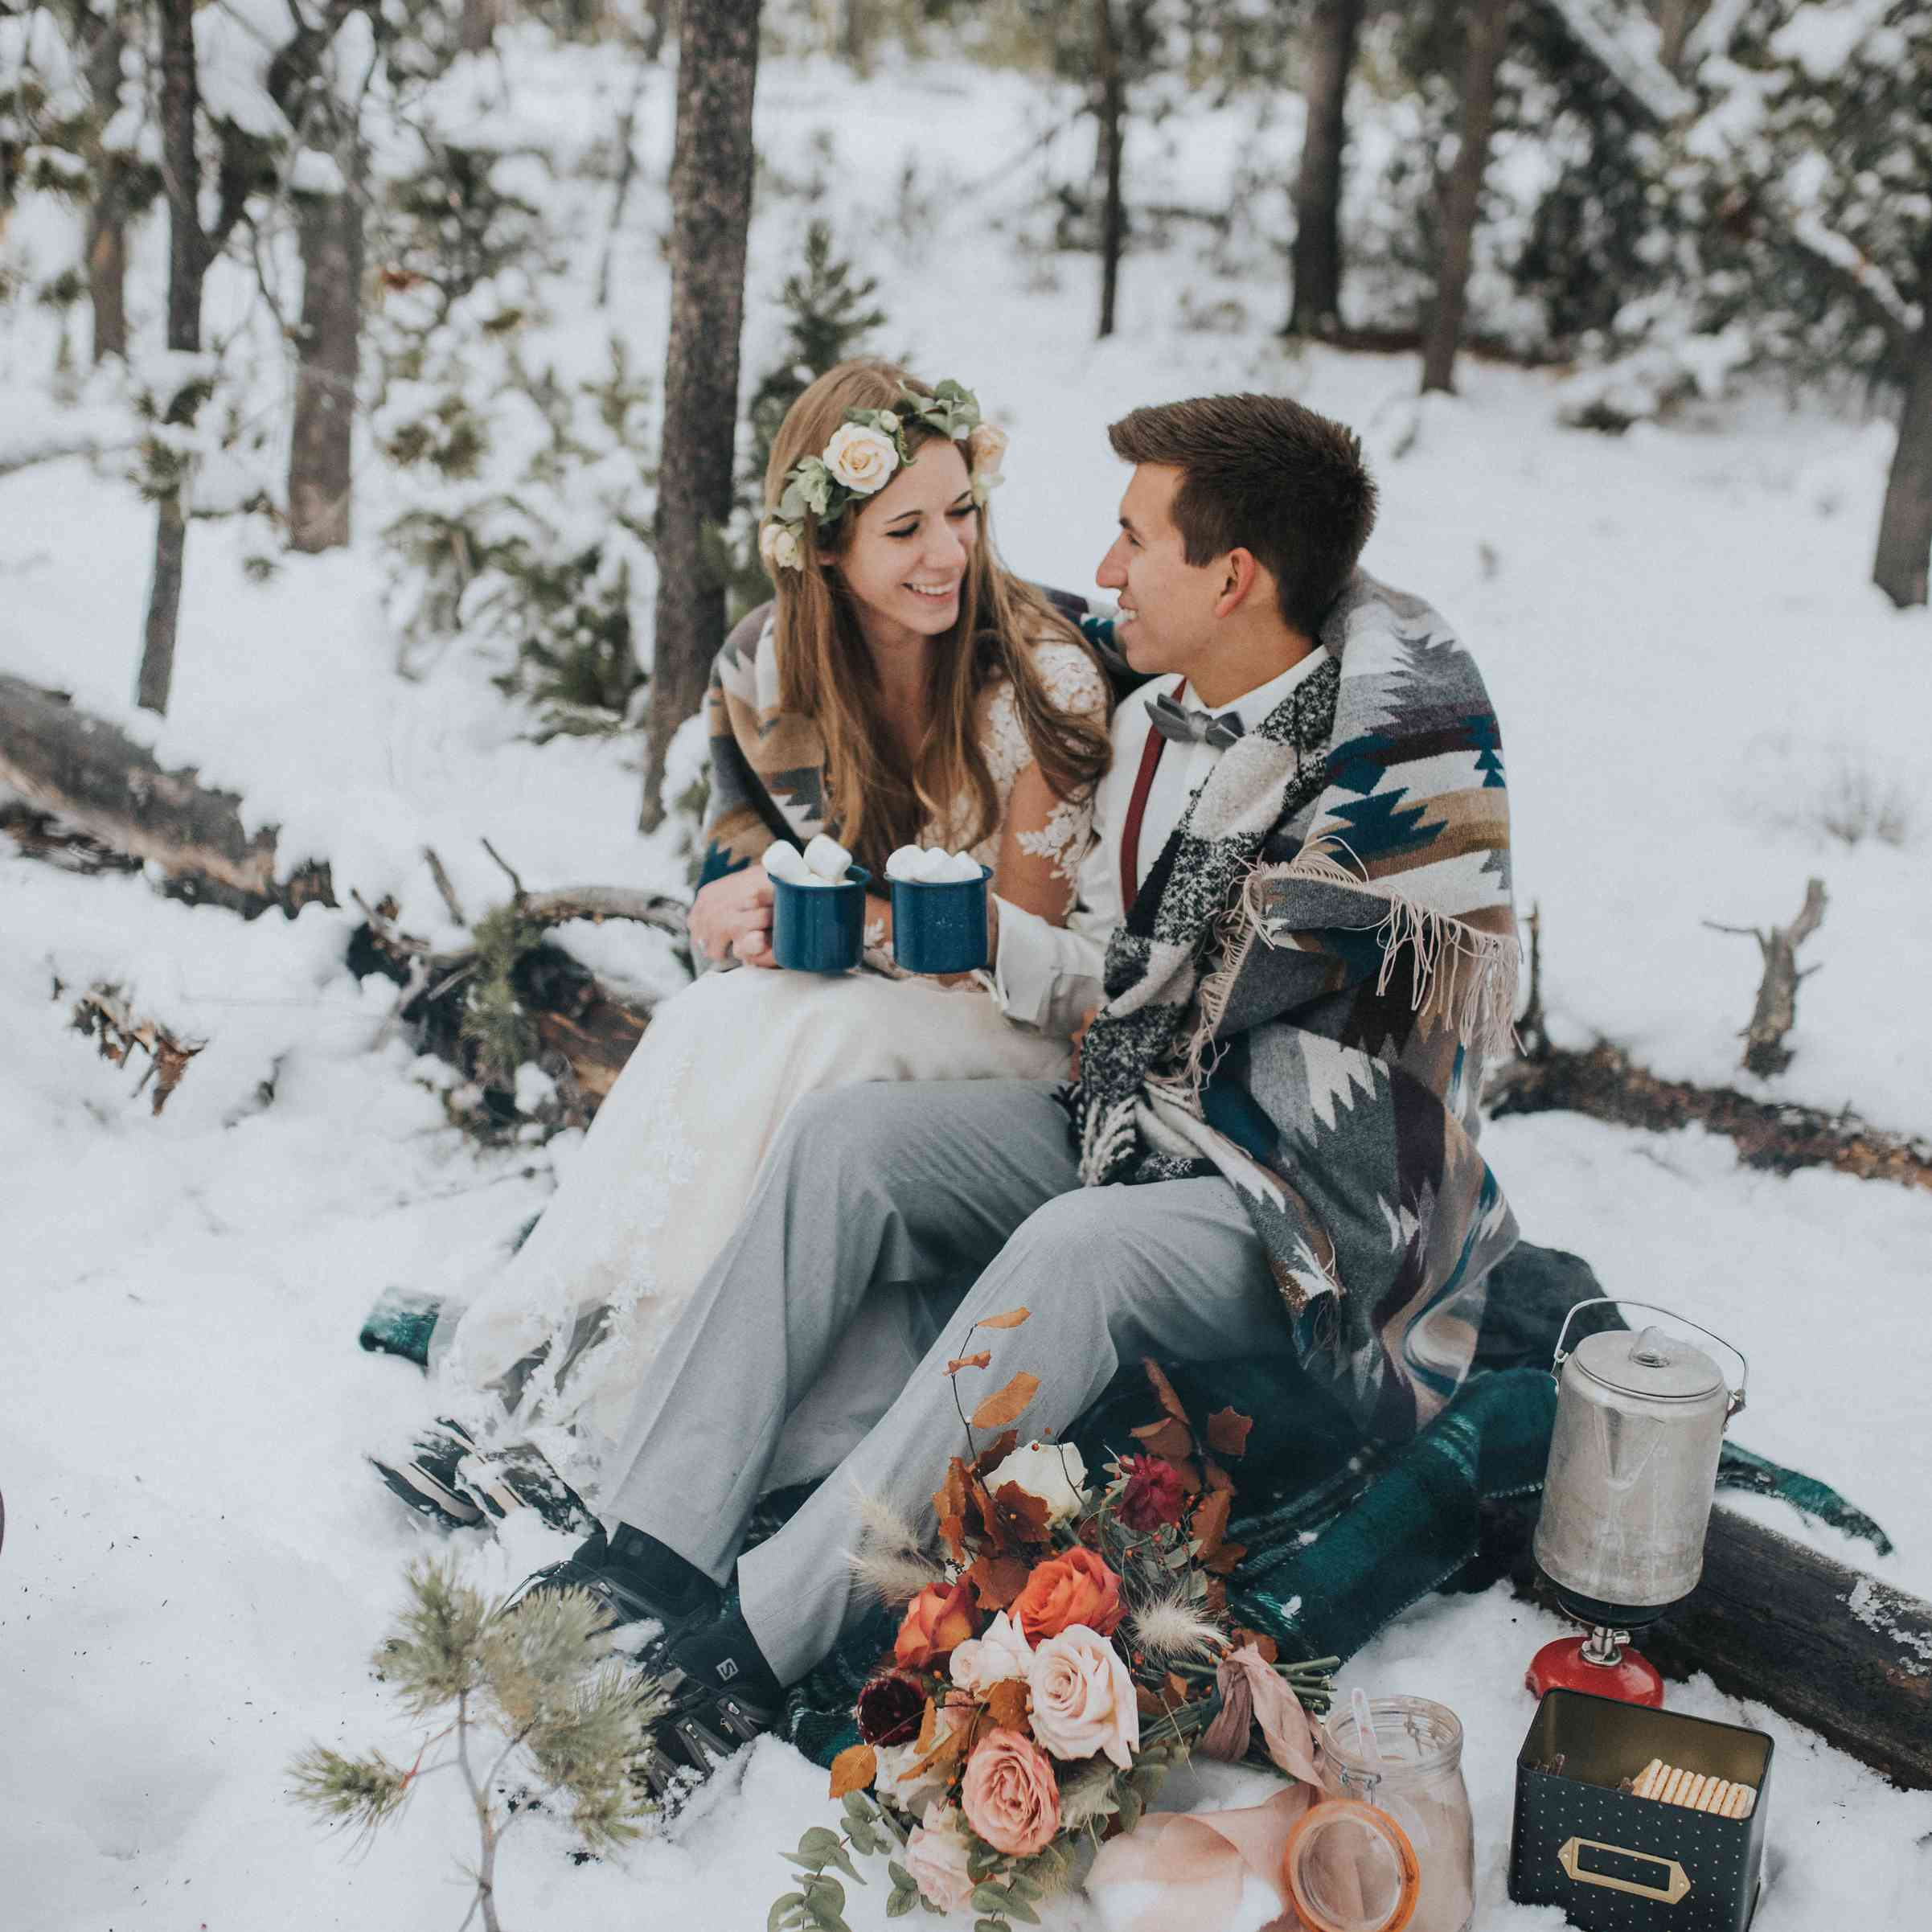 Bride and groom sitting on a log with a blanket and mugs of cocoa